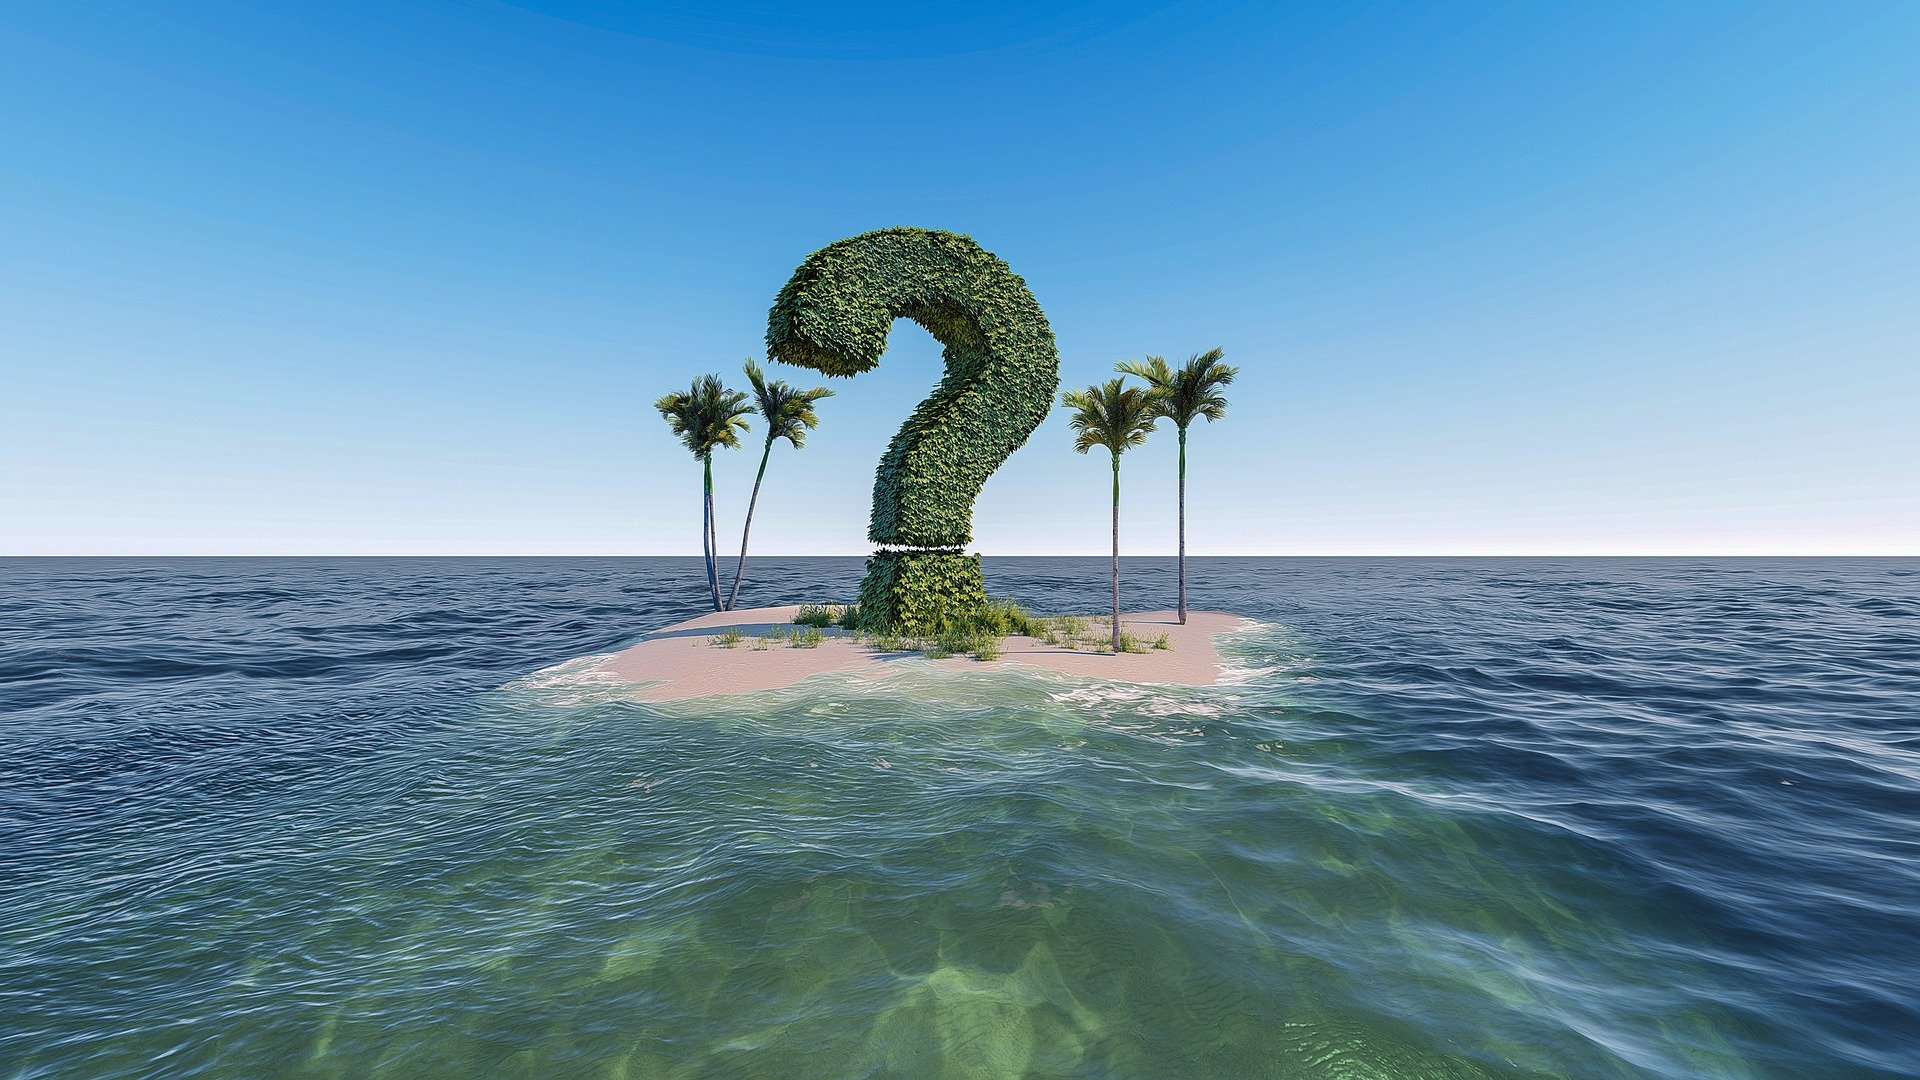 question mark and palm trees on a desert island